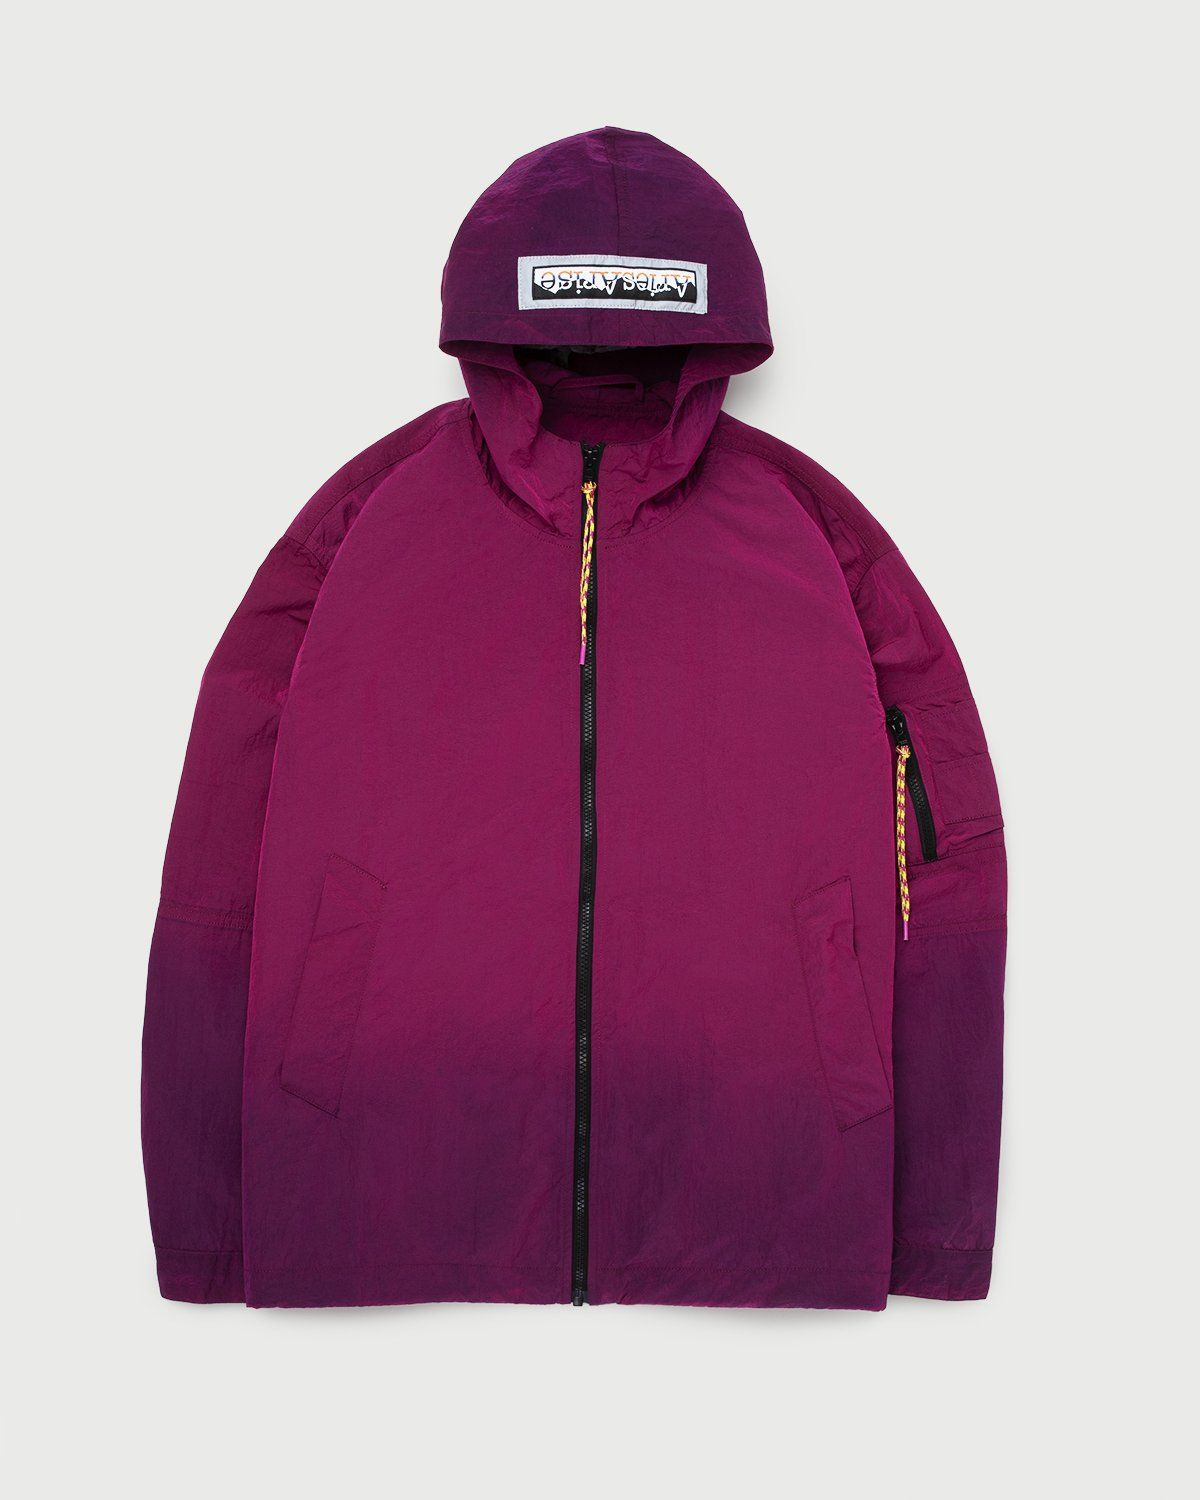 Aries - Ombre Dyed Tech Jacket Fuchsia - Image 1